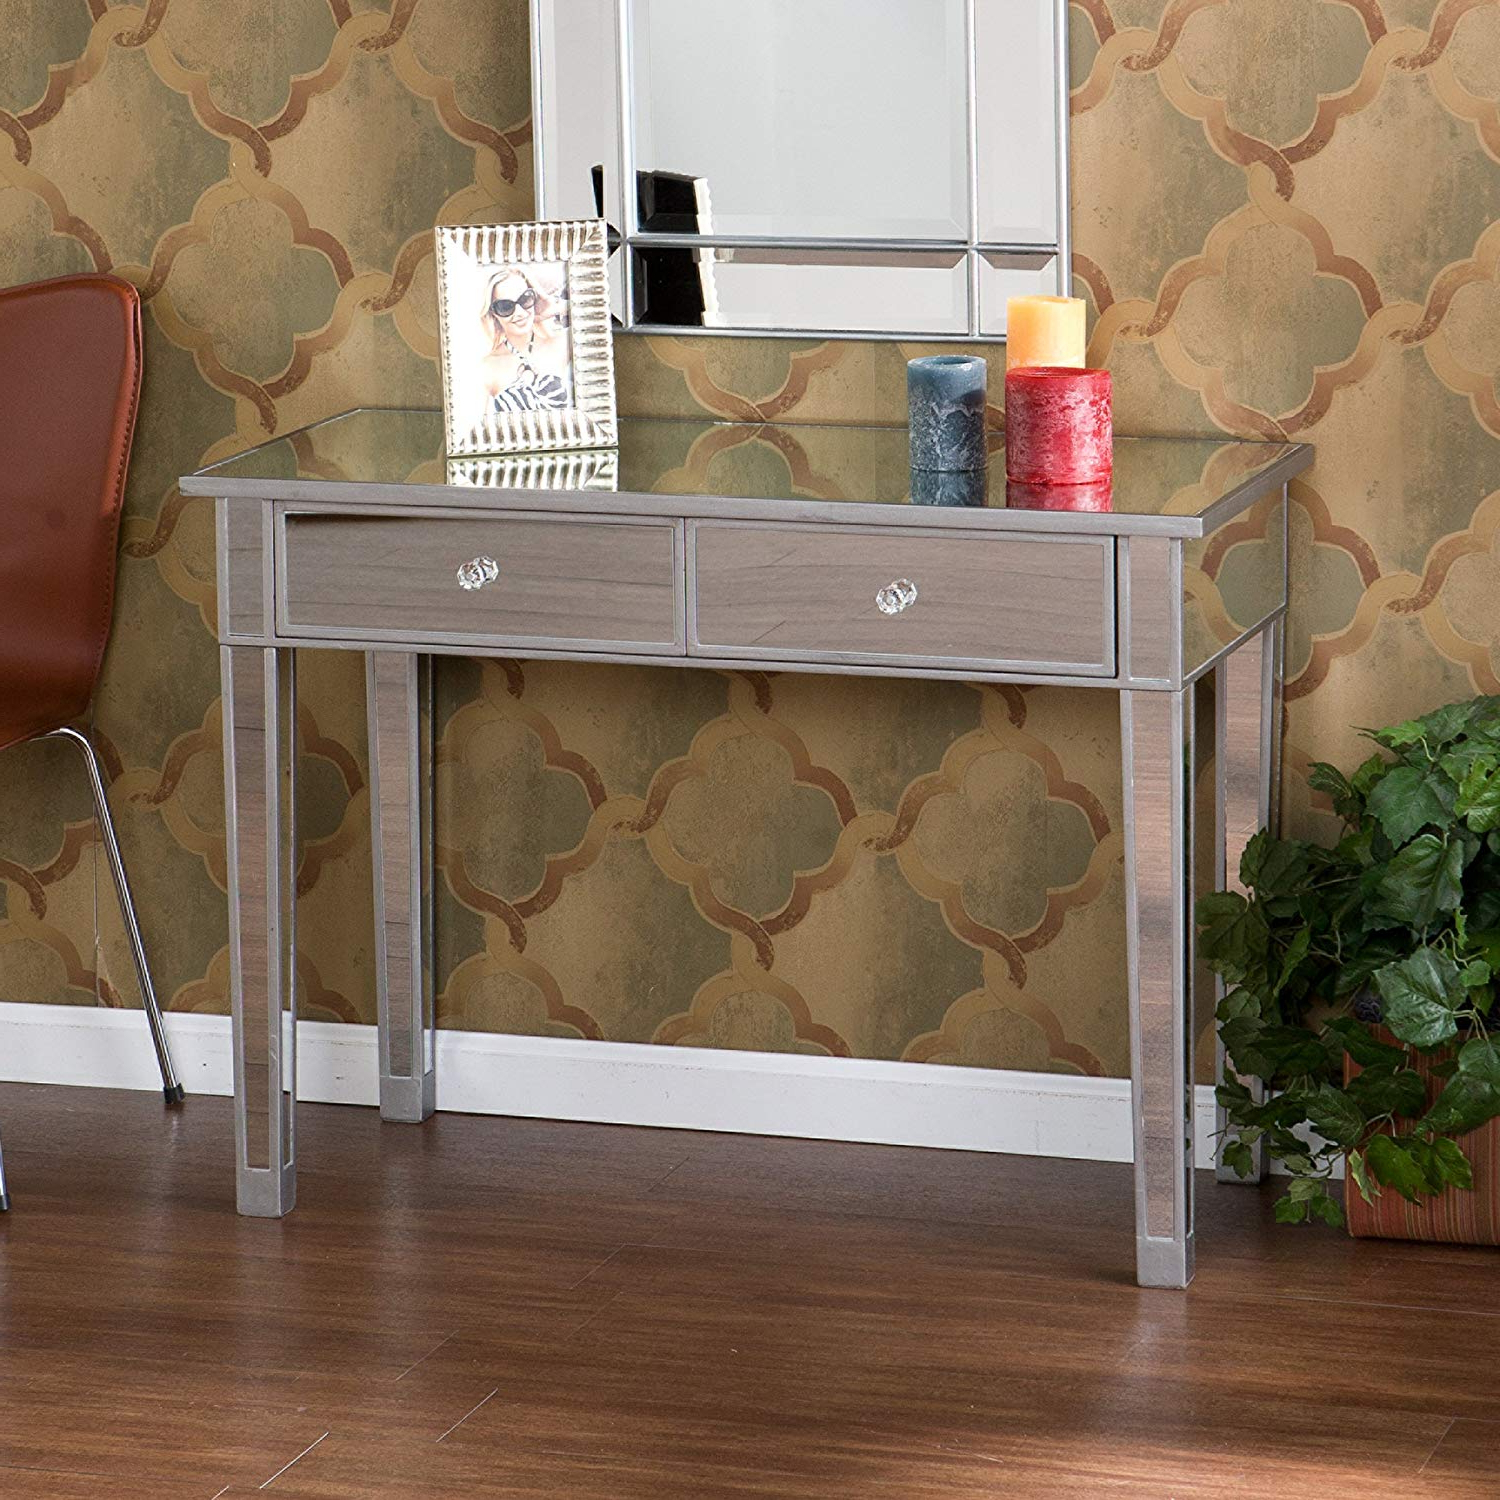 Most Up To Date Natural Wood Mirrored Media Console Tables Pertaining To Amazon: Harper Blvd Dalton Mirrored Accent Table: Kitchen & Dining (Gallery 15 of 20)